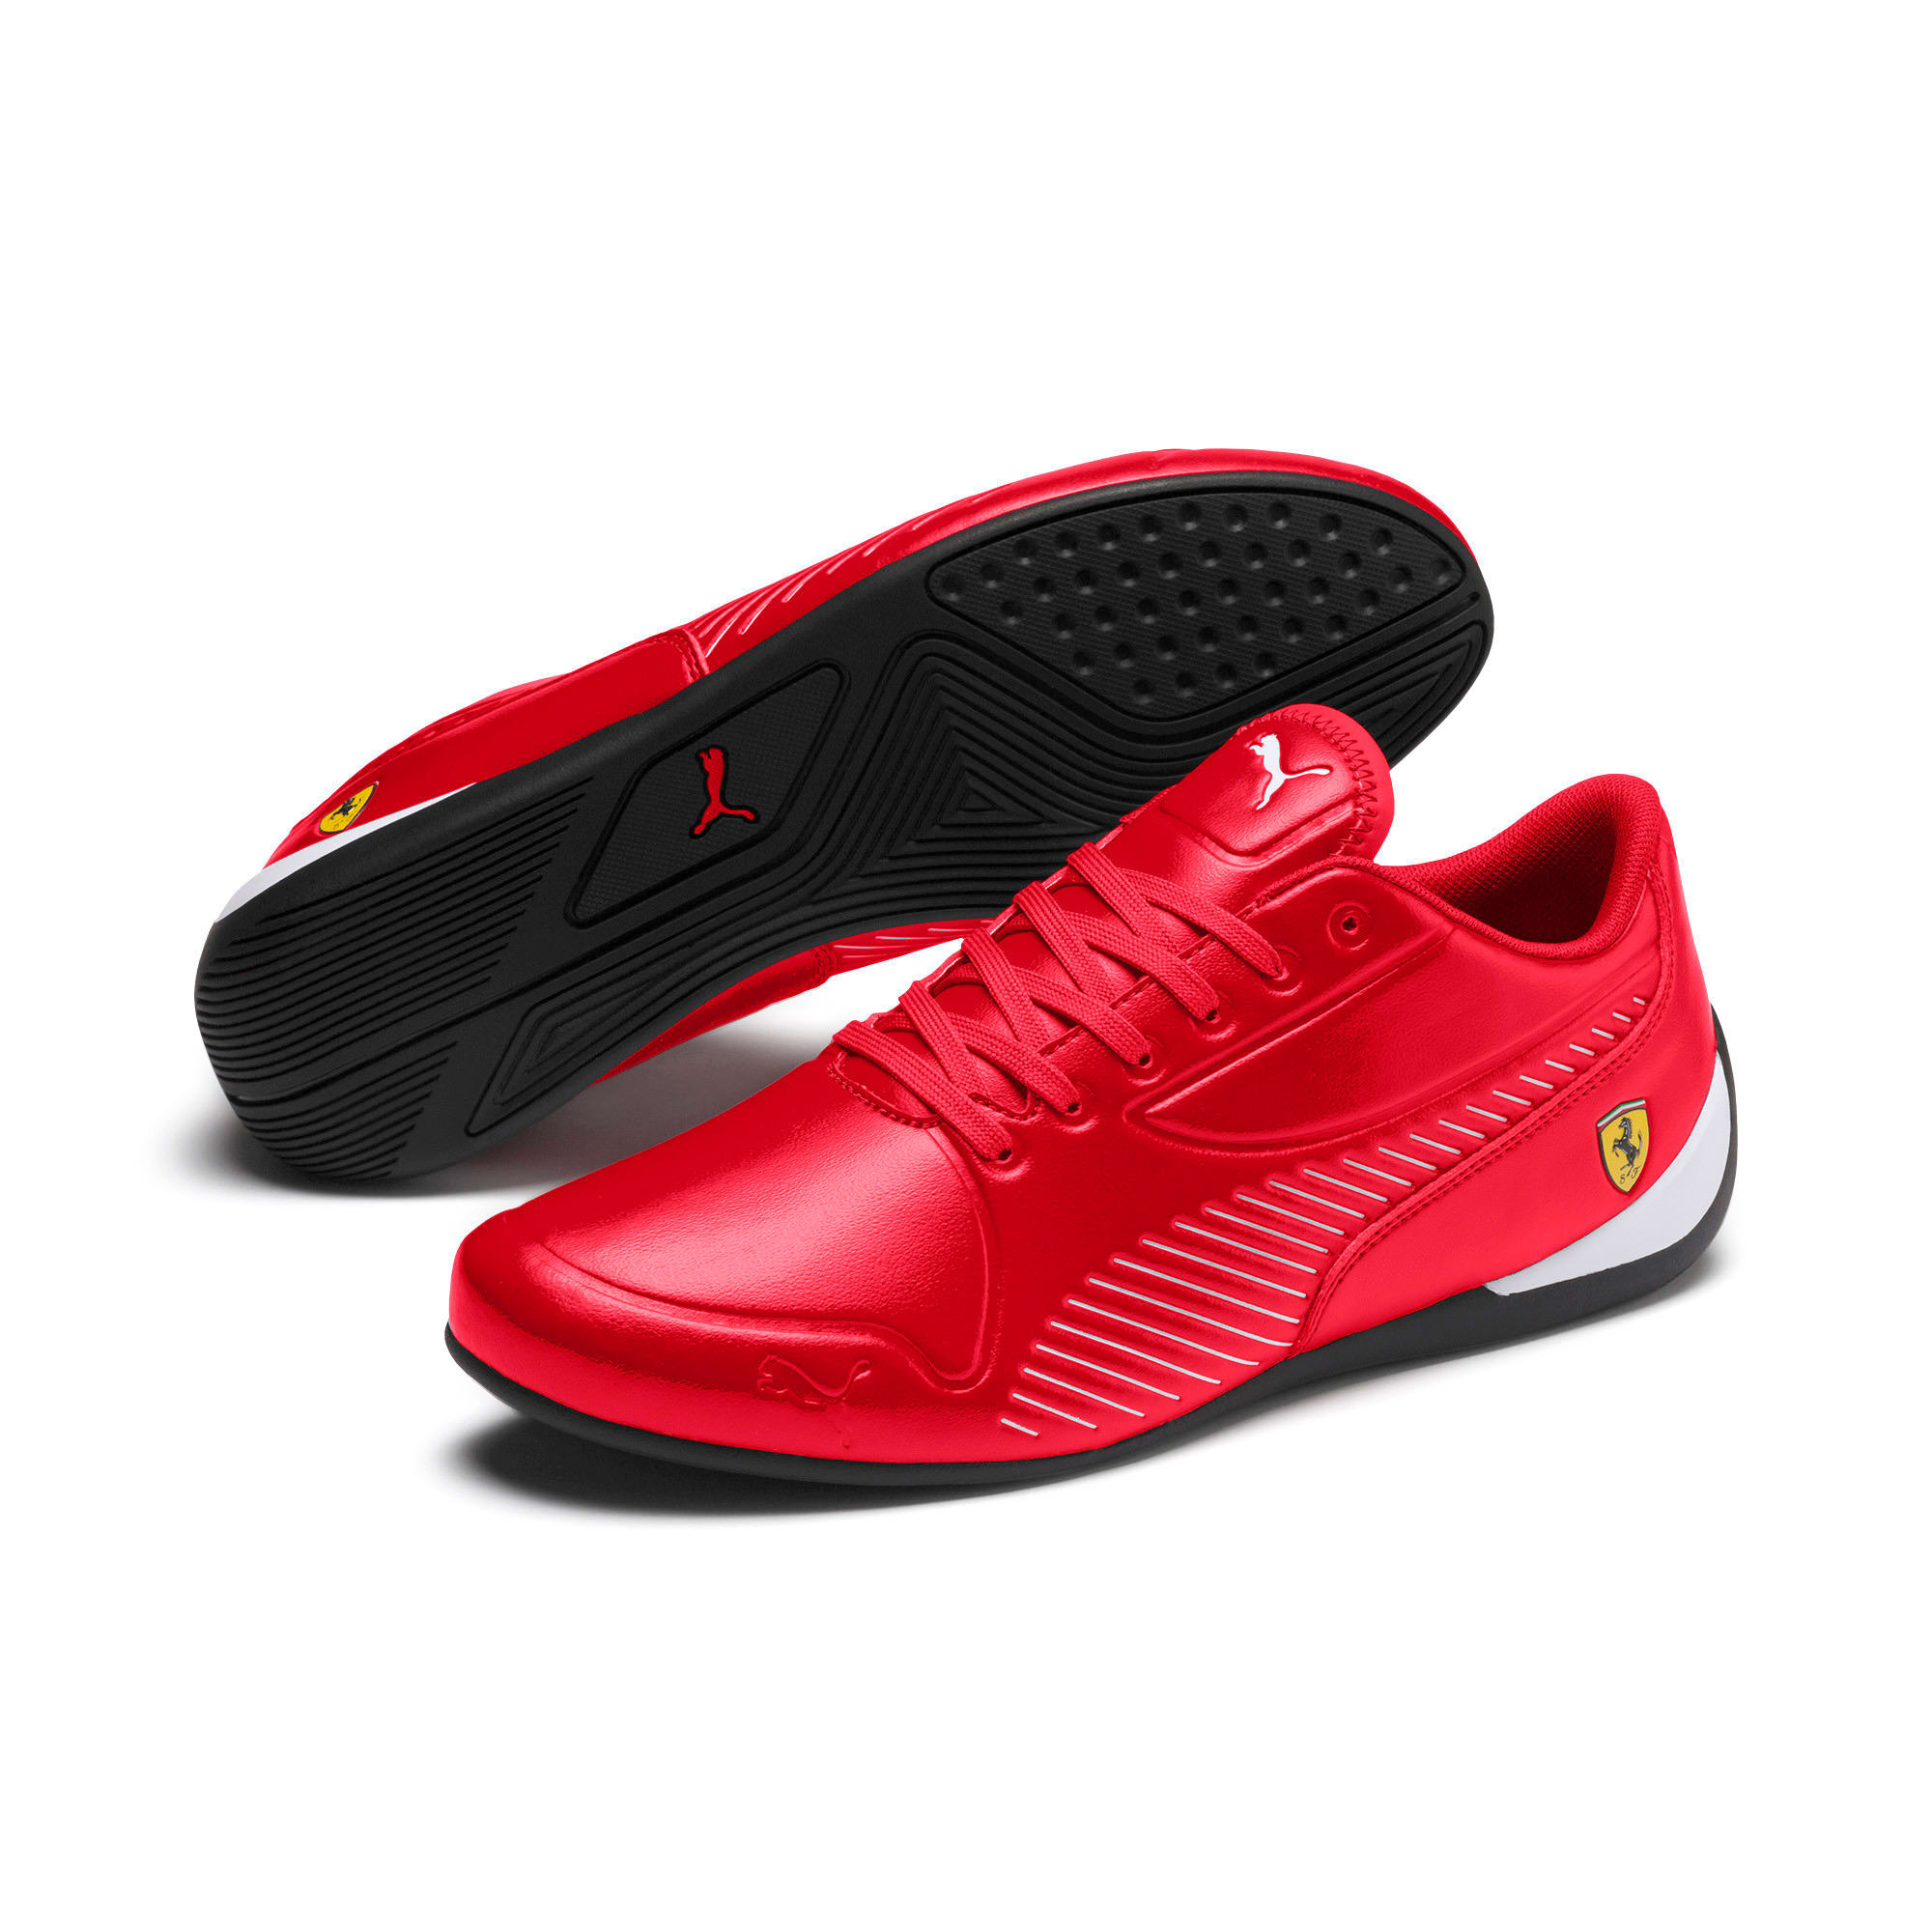 Thumbnail 2 of Scuderia Ferrari Drift Cat 7S Ultra Men's Shoes, Rosso Corsa-Puma White, medium